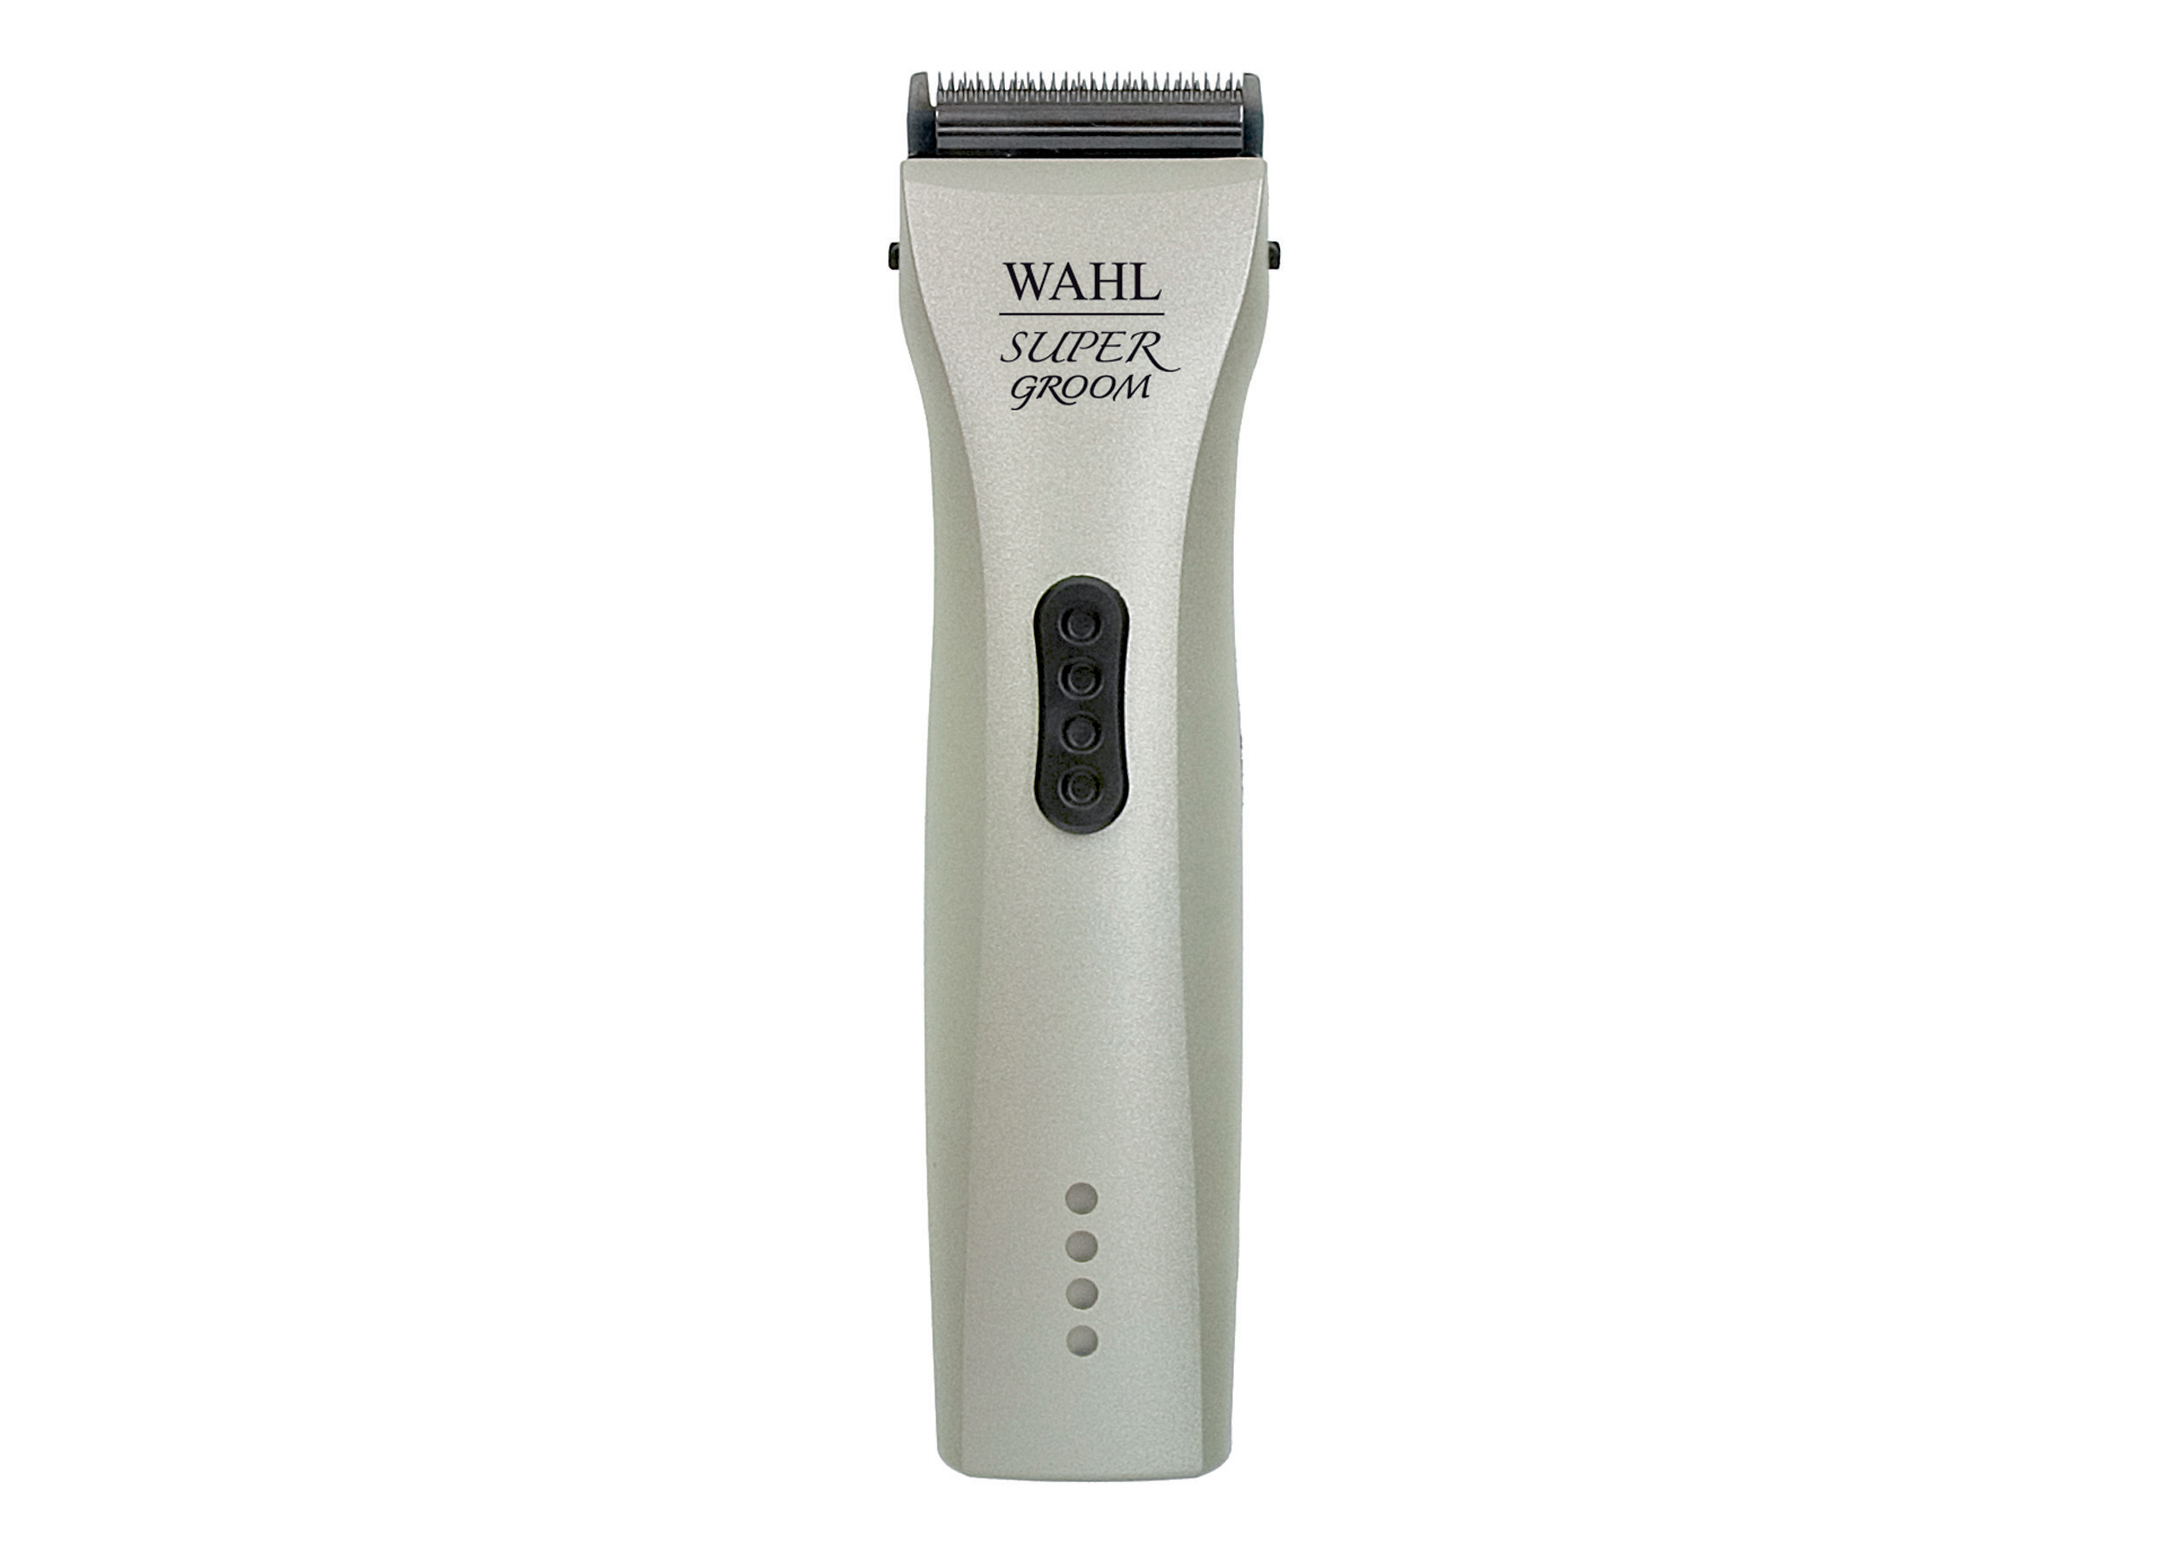 Wahl Super Groom 1872 Tondeuse de Toilettage